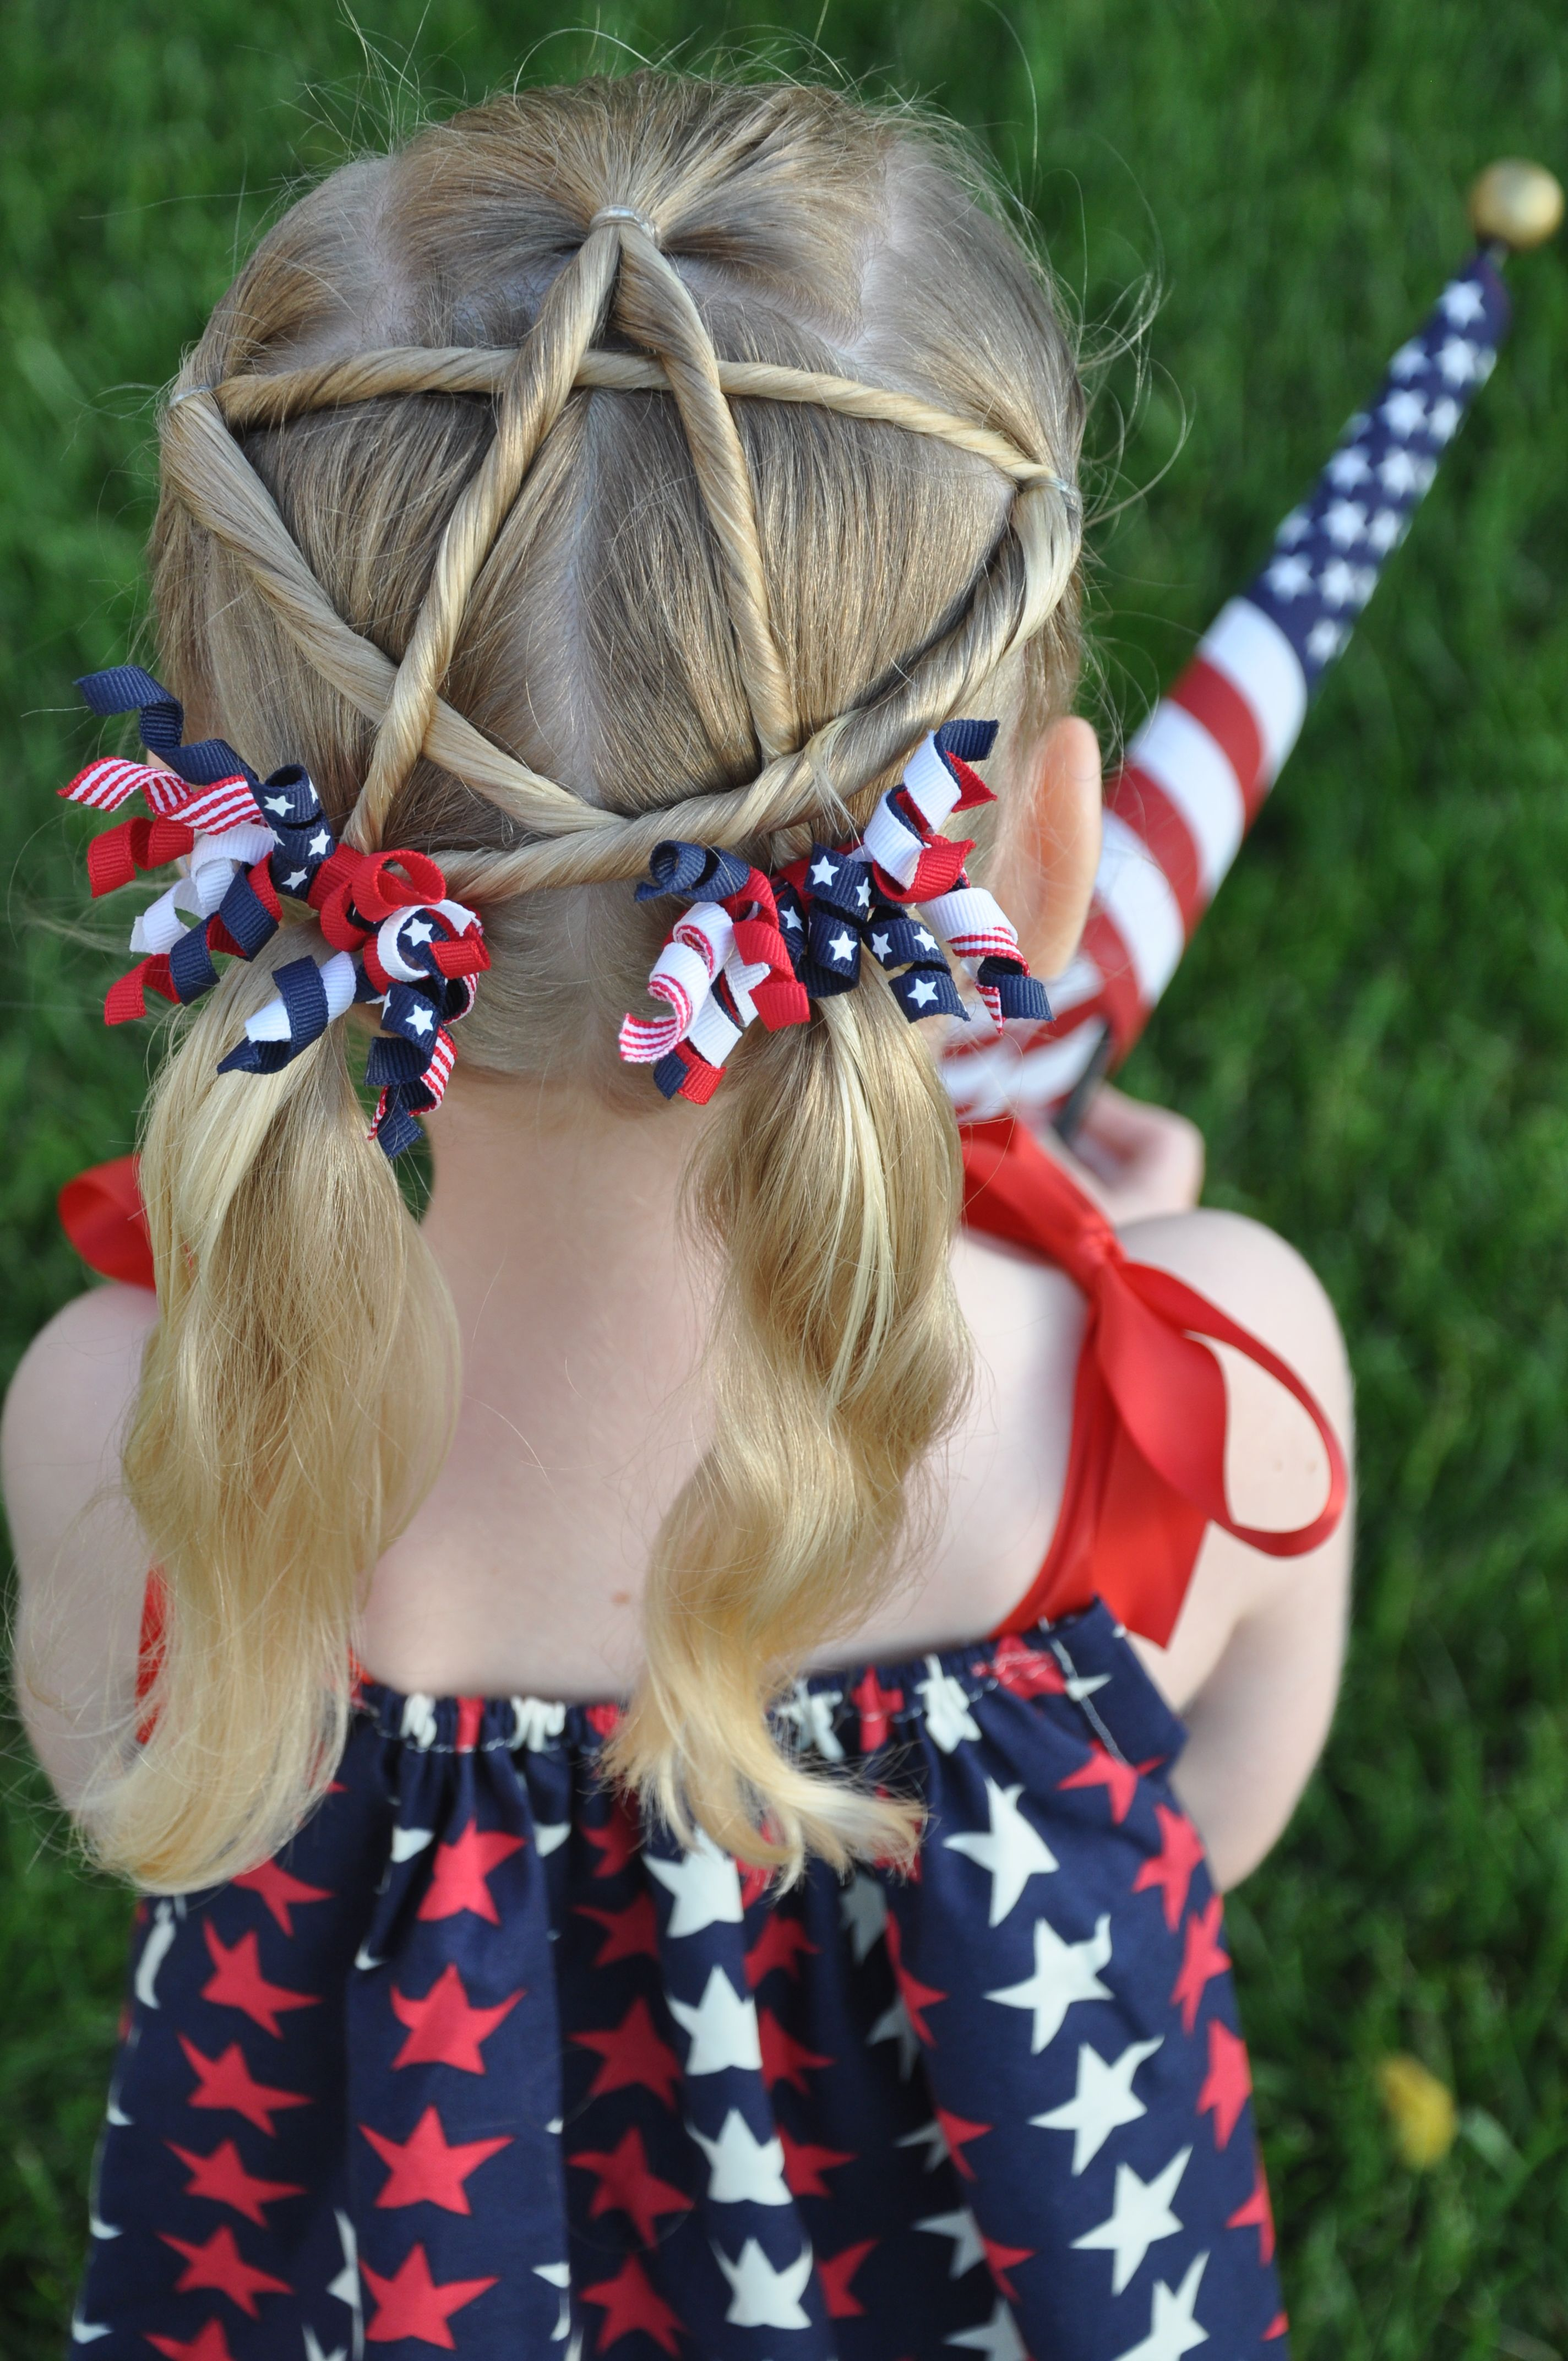 37 Creative Hairstyle Ideas For Little Girls Hair Styles Creative Hairstyles Little Girl Hairstyles